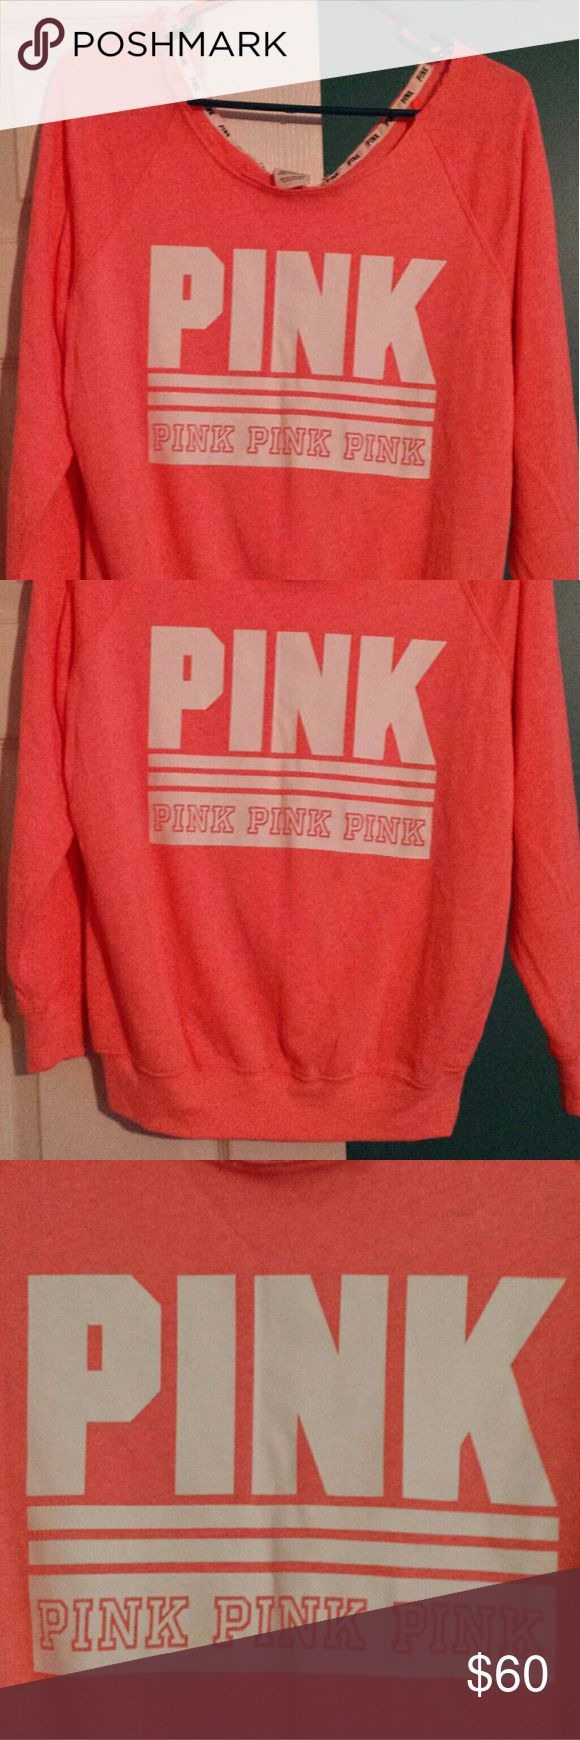 NEW, VS PINK SLOUCHY SHOULDER, RAW EDGE SWEATSHIRT NEW, IN ONLINE BAG VS PINK SLOUCHY SHOULDER, RAW EDGE SWEATSHIRT, VERY PRETTY Victoria secret Tops Sweatshirts & Hoodies